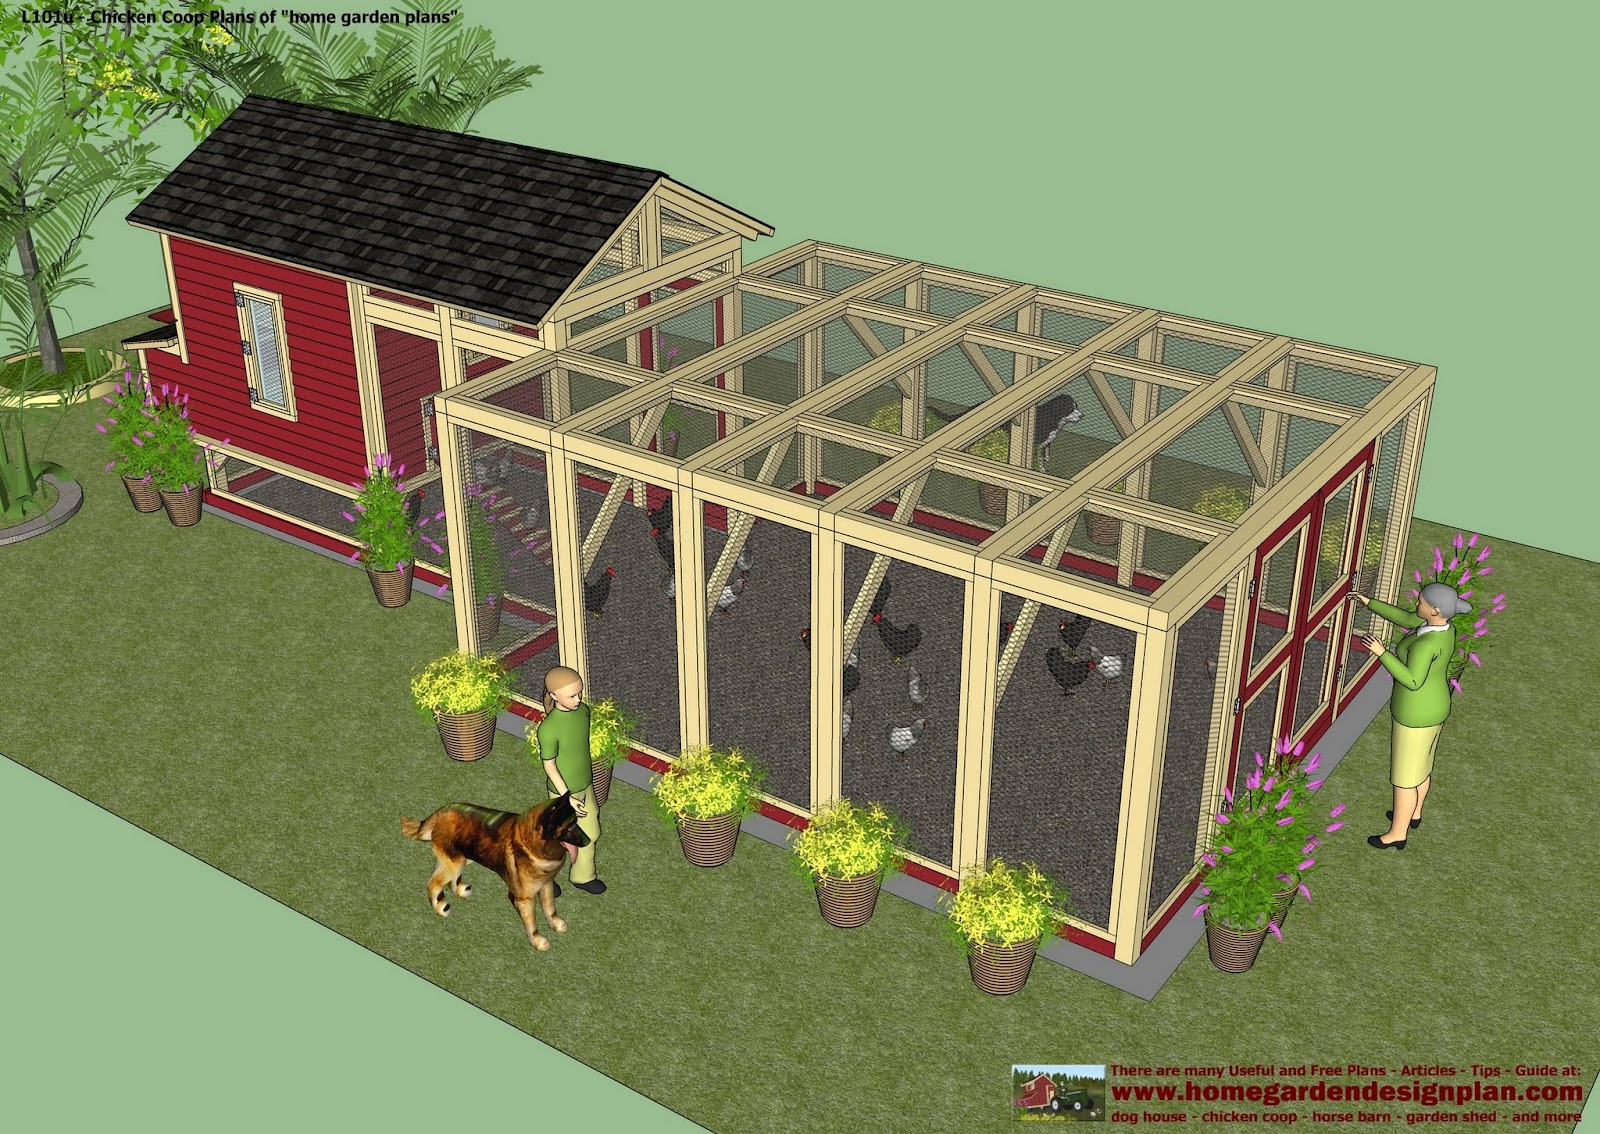 Chicken Coop Ideas Design 6 chicken coop designs and ideas Home Garden Plans Chicken Coops